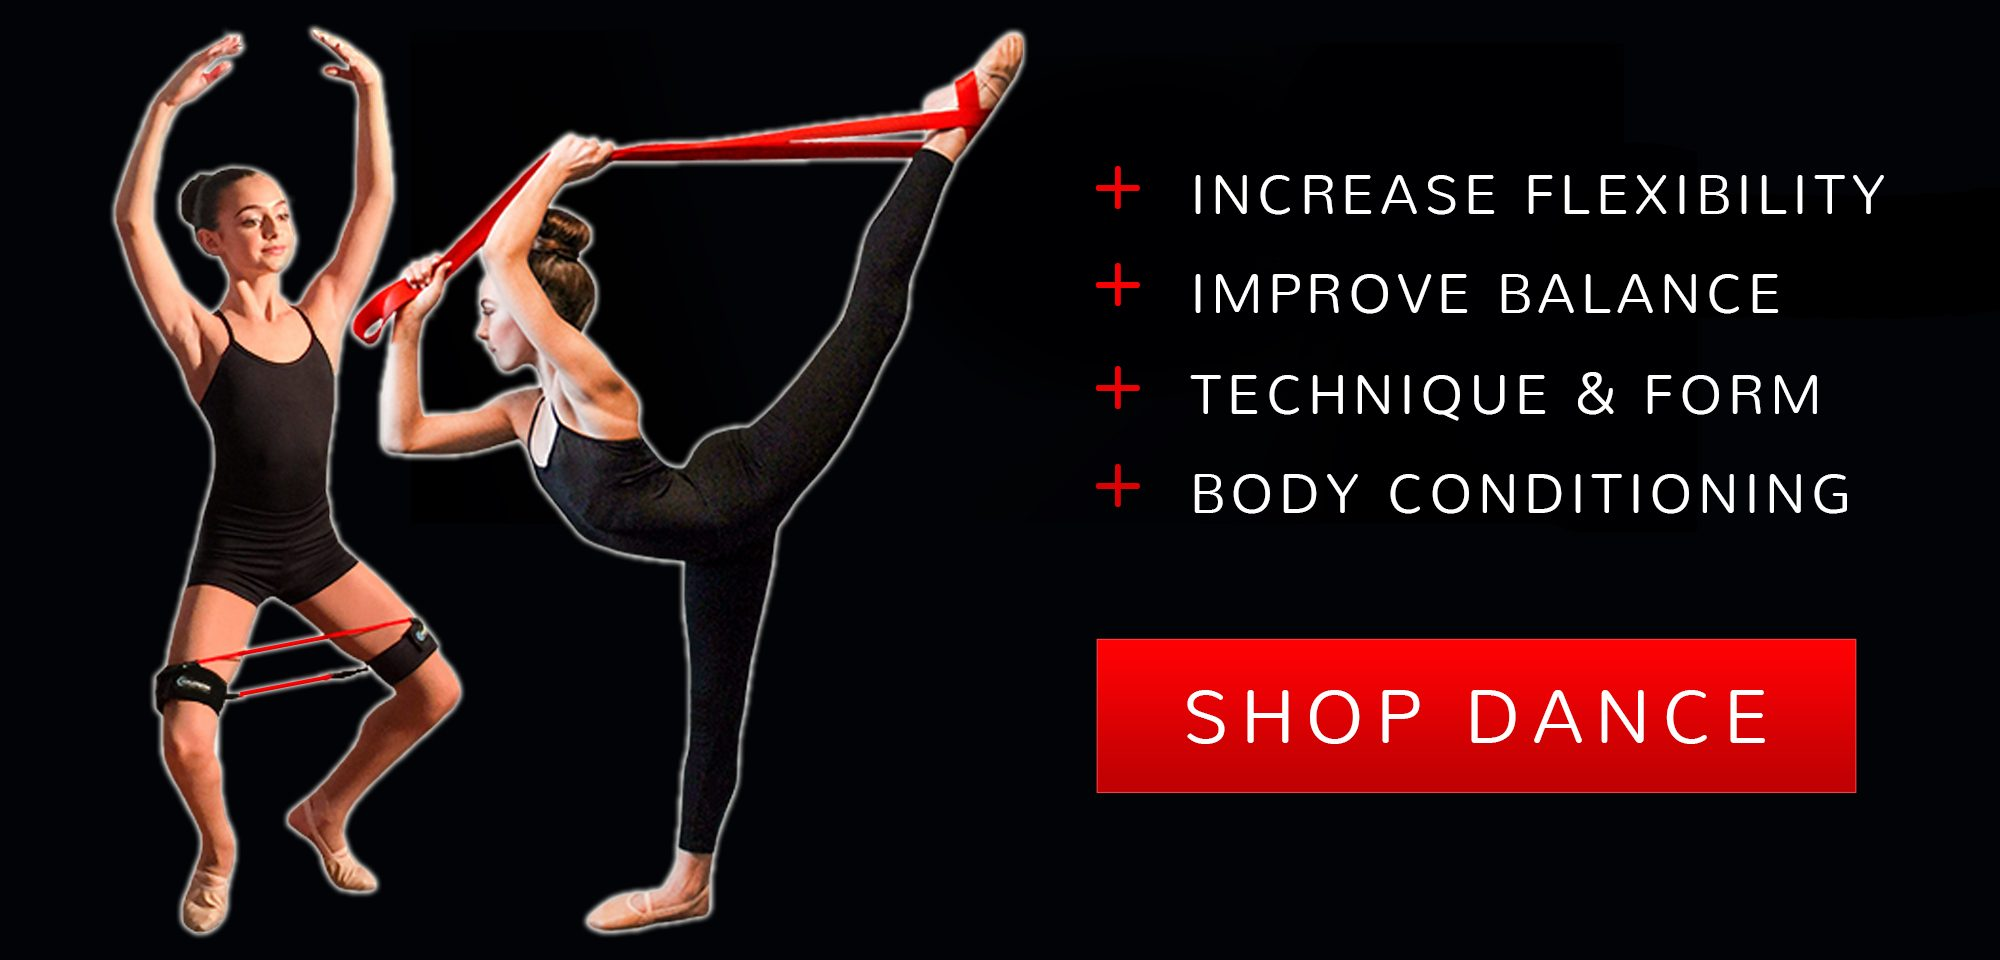 Increase flexibility, improve balance, technique and form, body conditioning for Dancers - Shop Dance